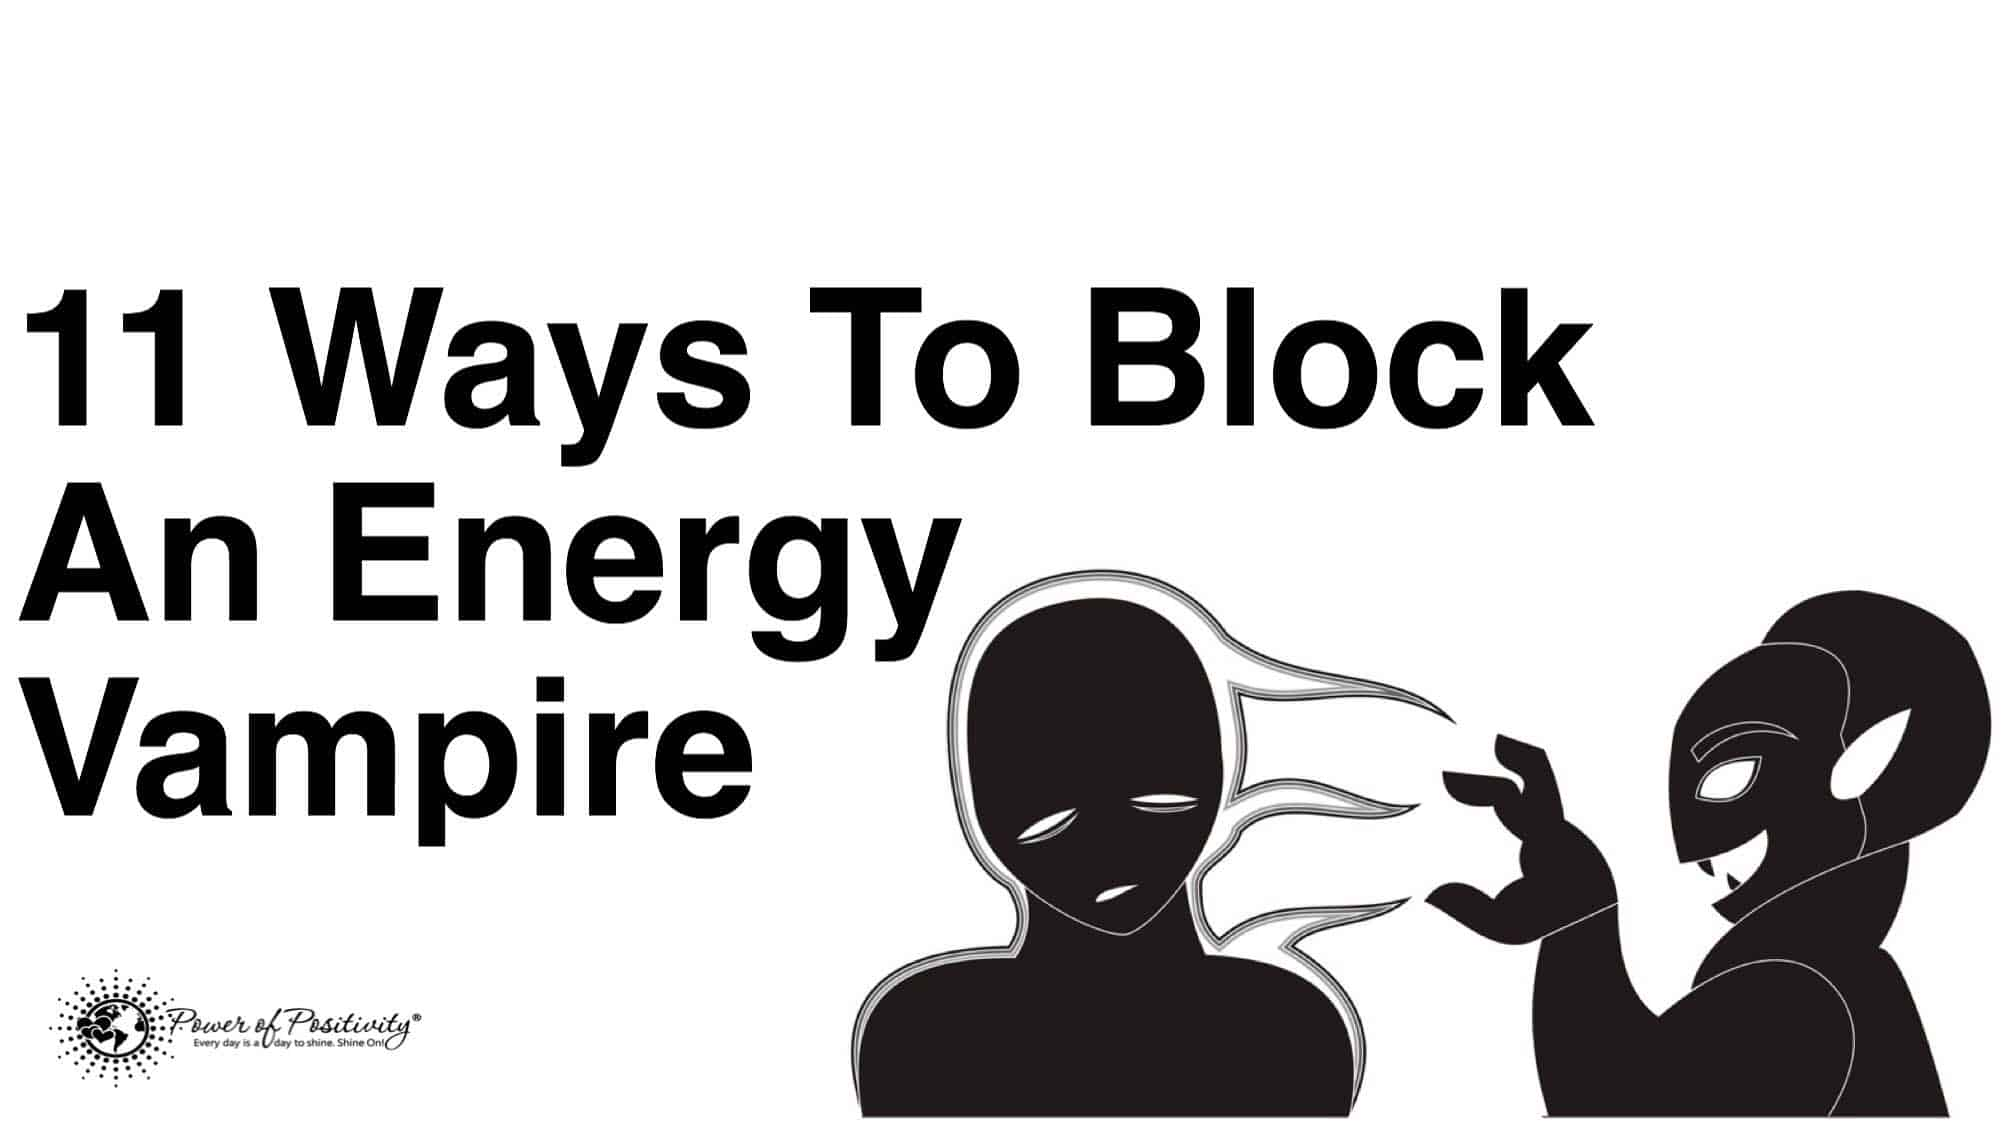 11 Ways To Block An Energy Vampire